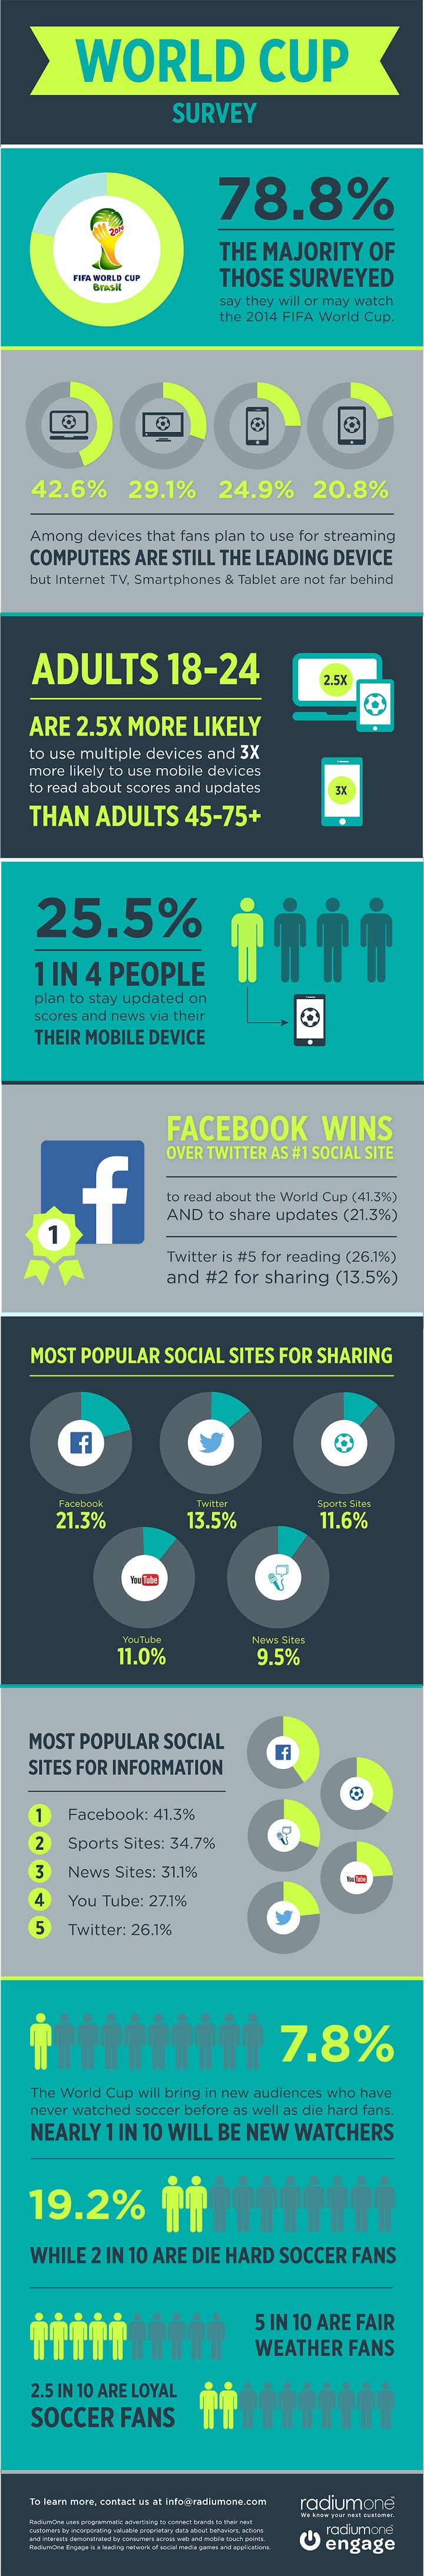 Where the #WorldCup Fan's Social Passion Lies - #infographic #socialmedia